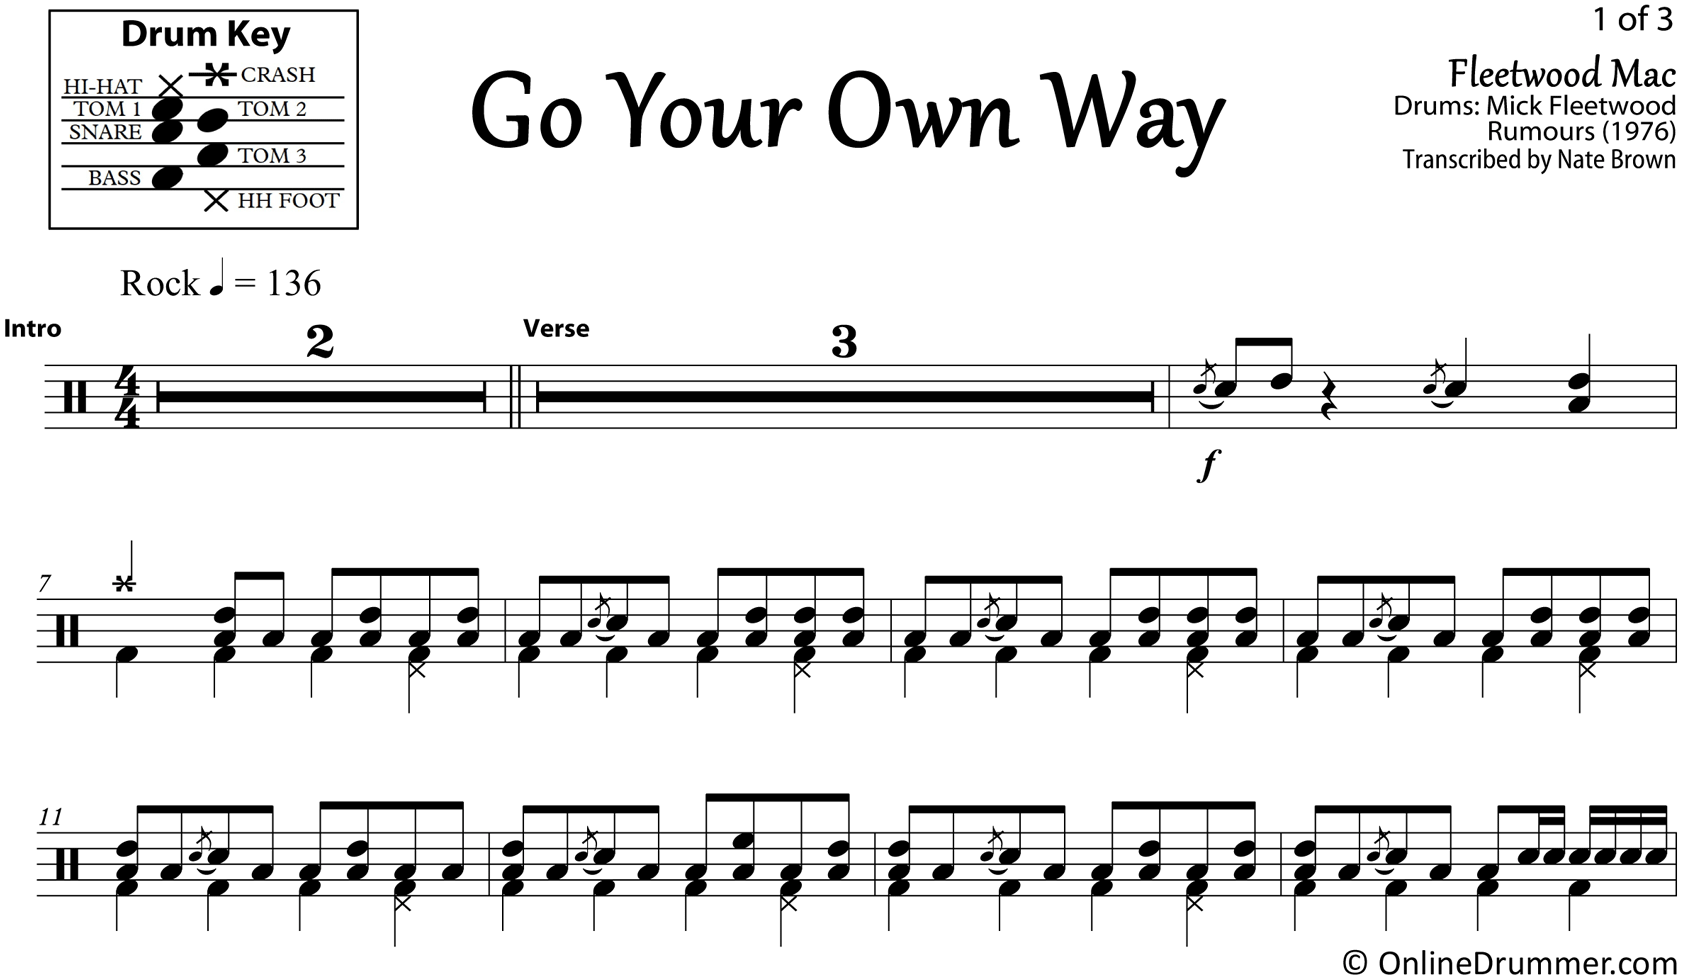 Go Your Own Way - Fleetwood Mac - Drum Sheet Music